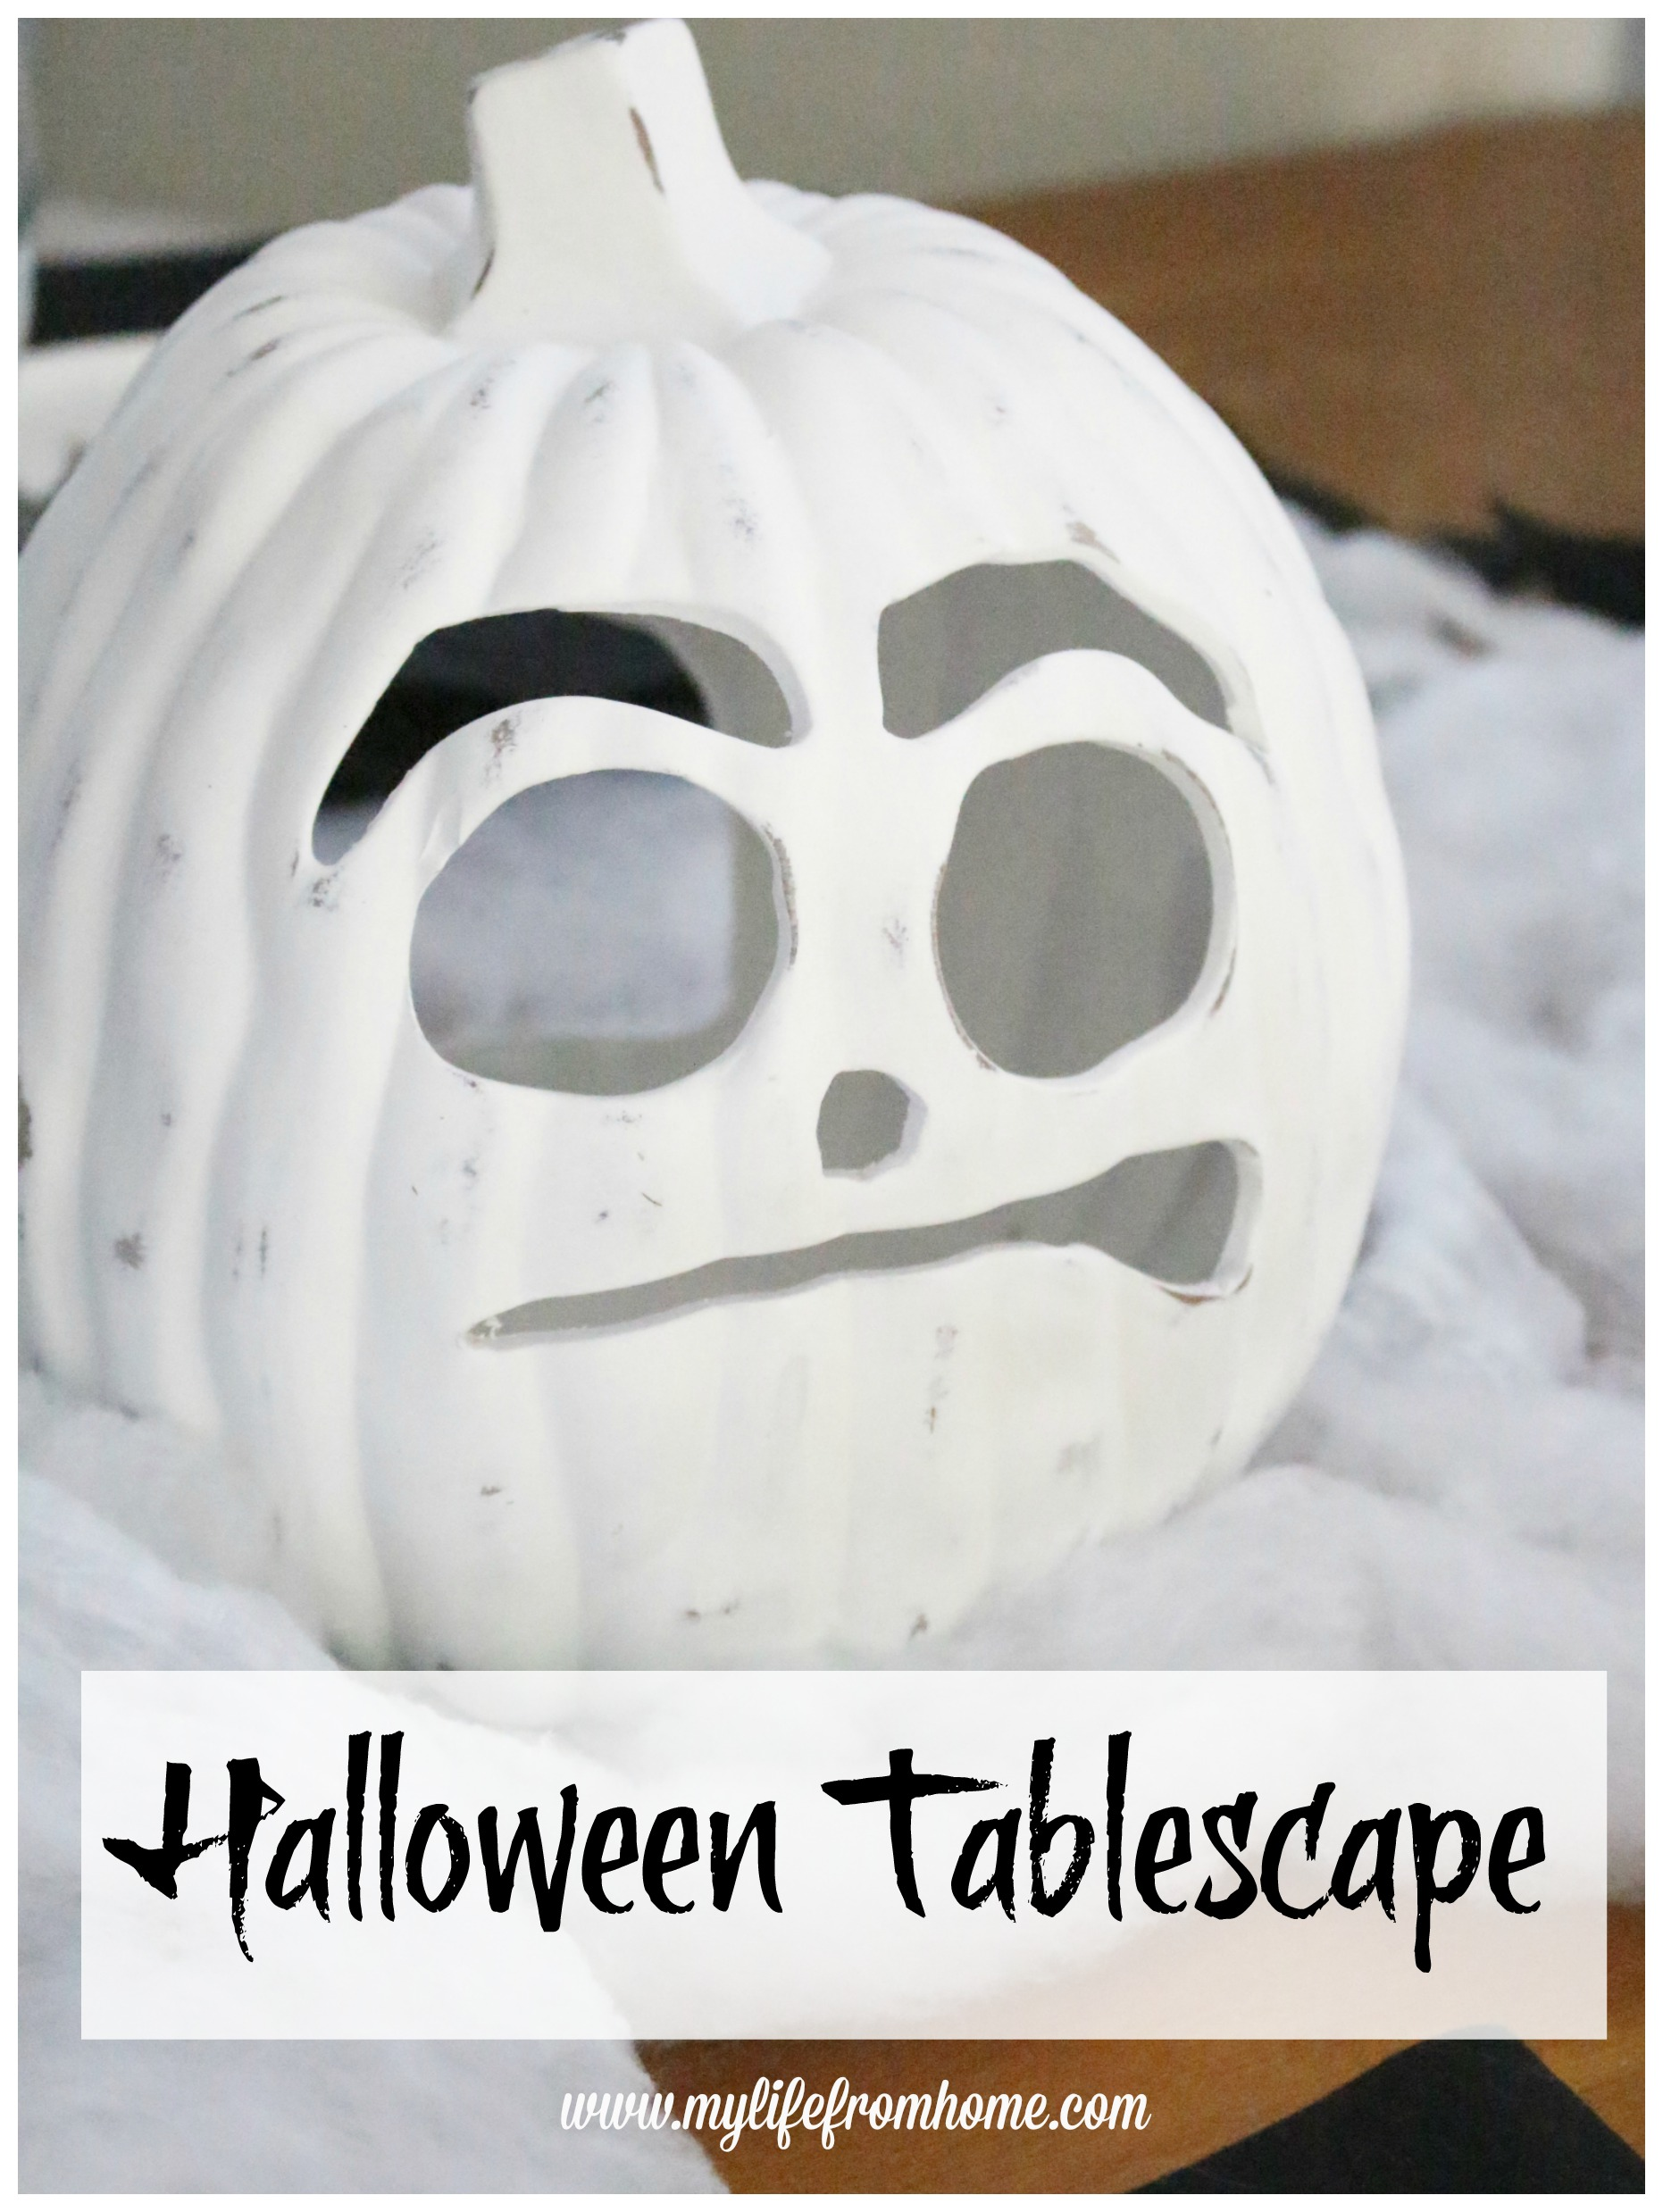 halloween-tablescape-halloween-decor-decorating-for-halloween-halloween-dinner-halloween-dining-room-decor-table-setting-for-halloween-white-and-black-pumpkins